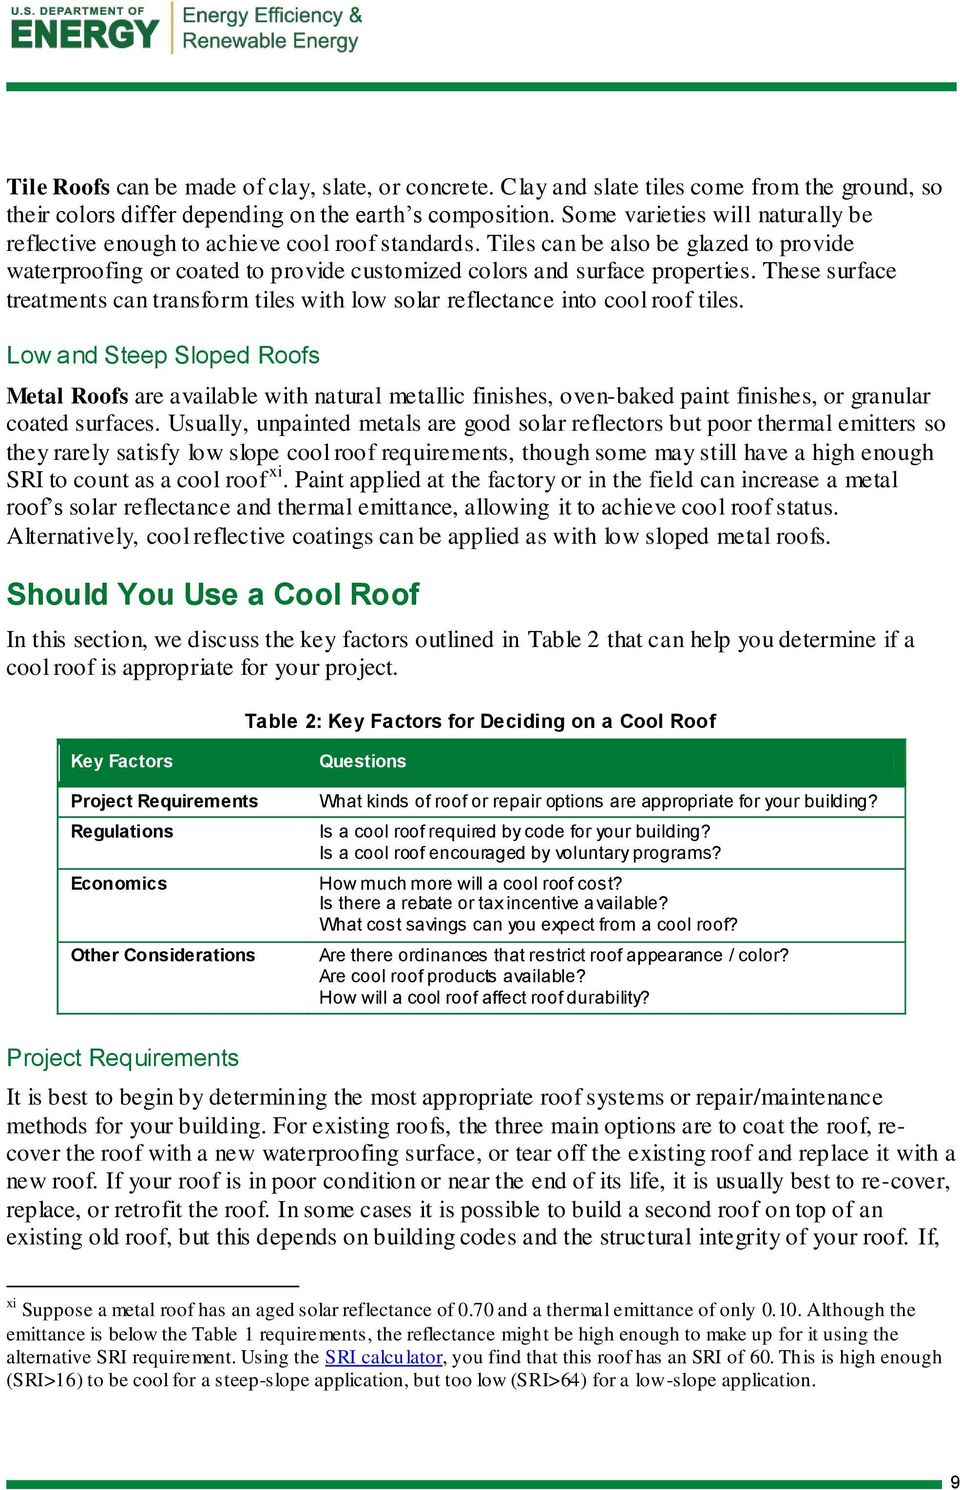 Guidelines for Selecting Cool Roofs - PDF